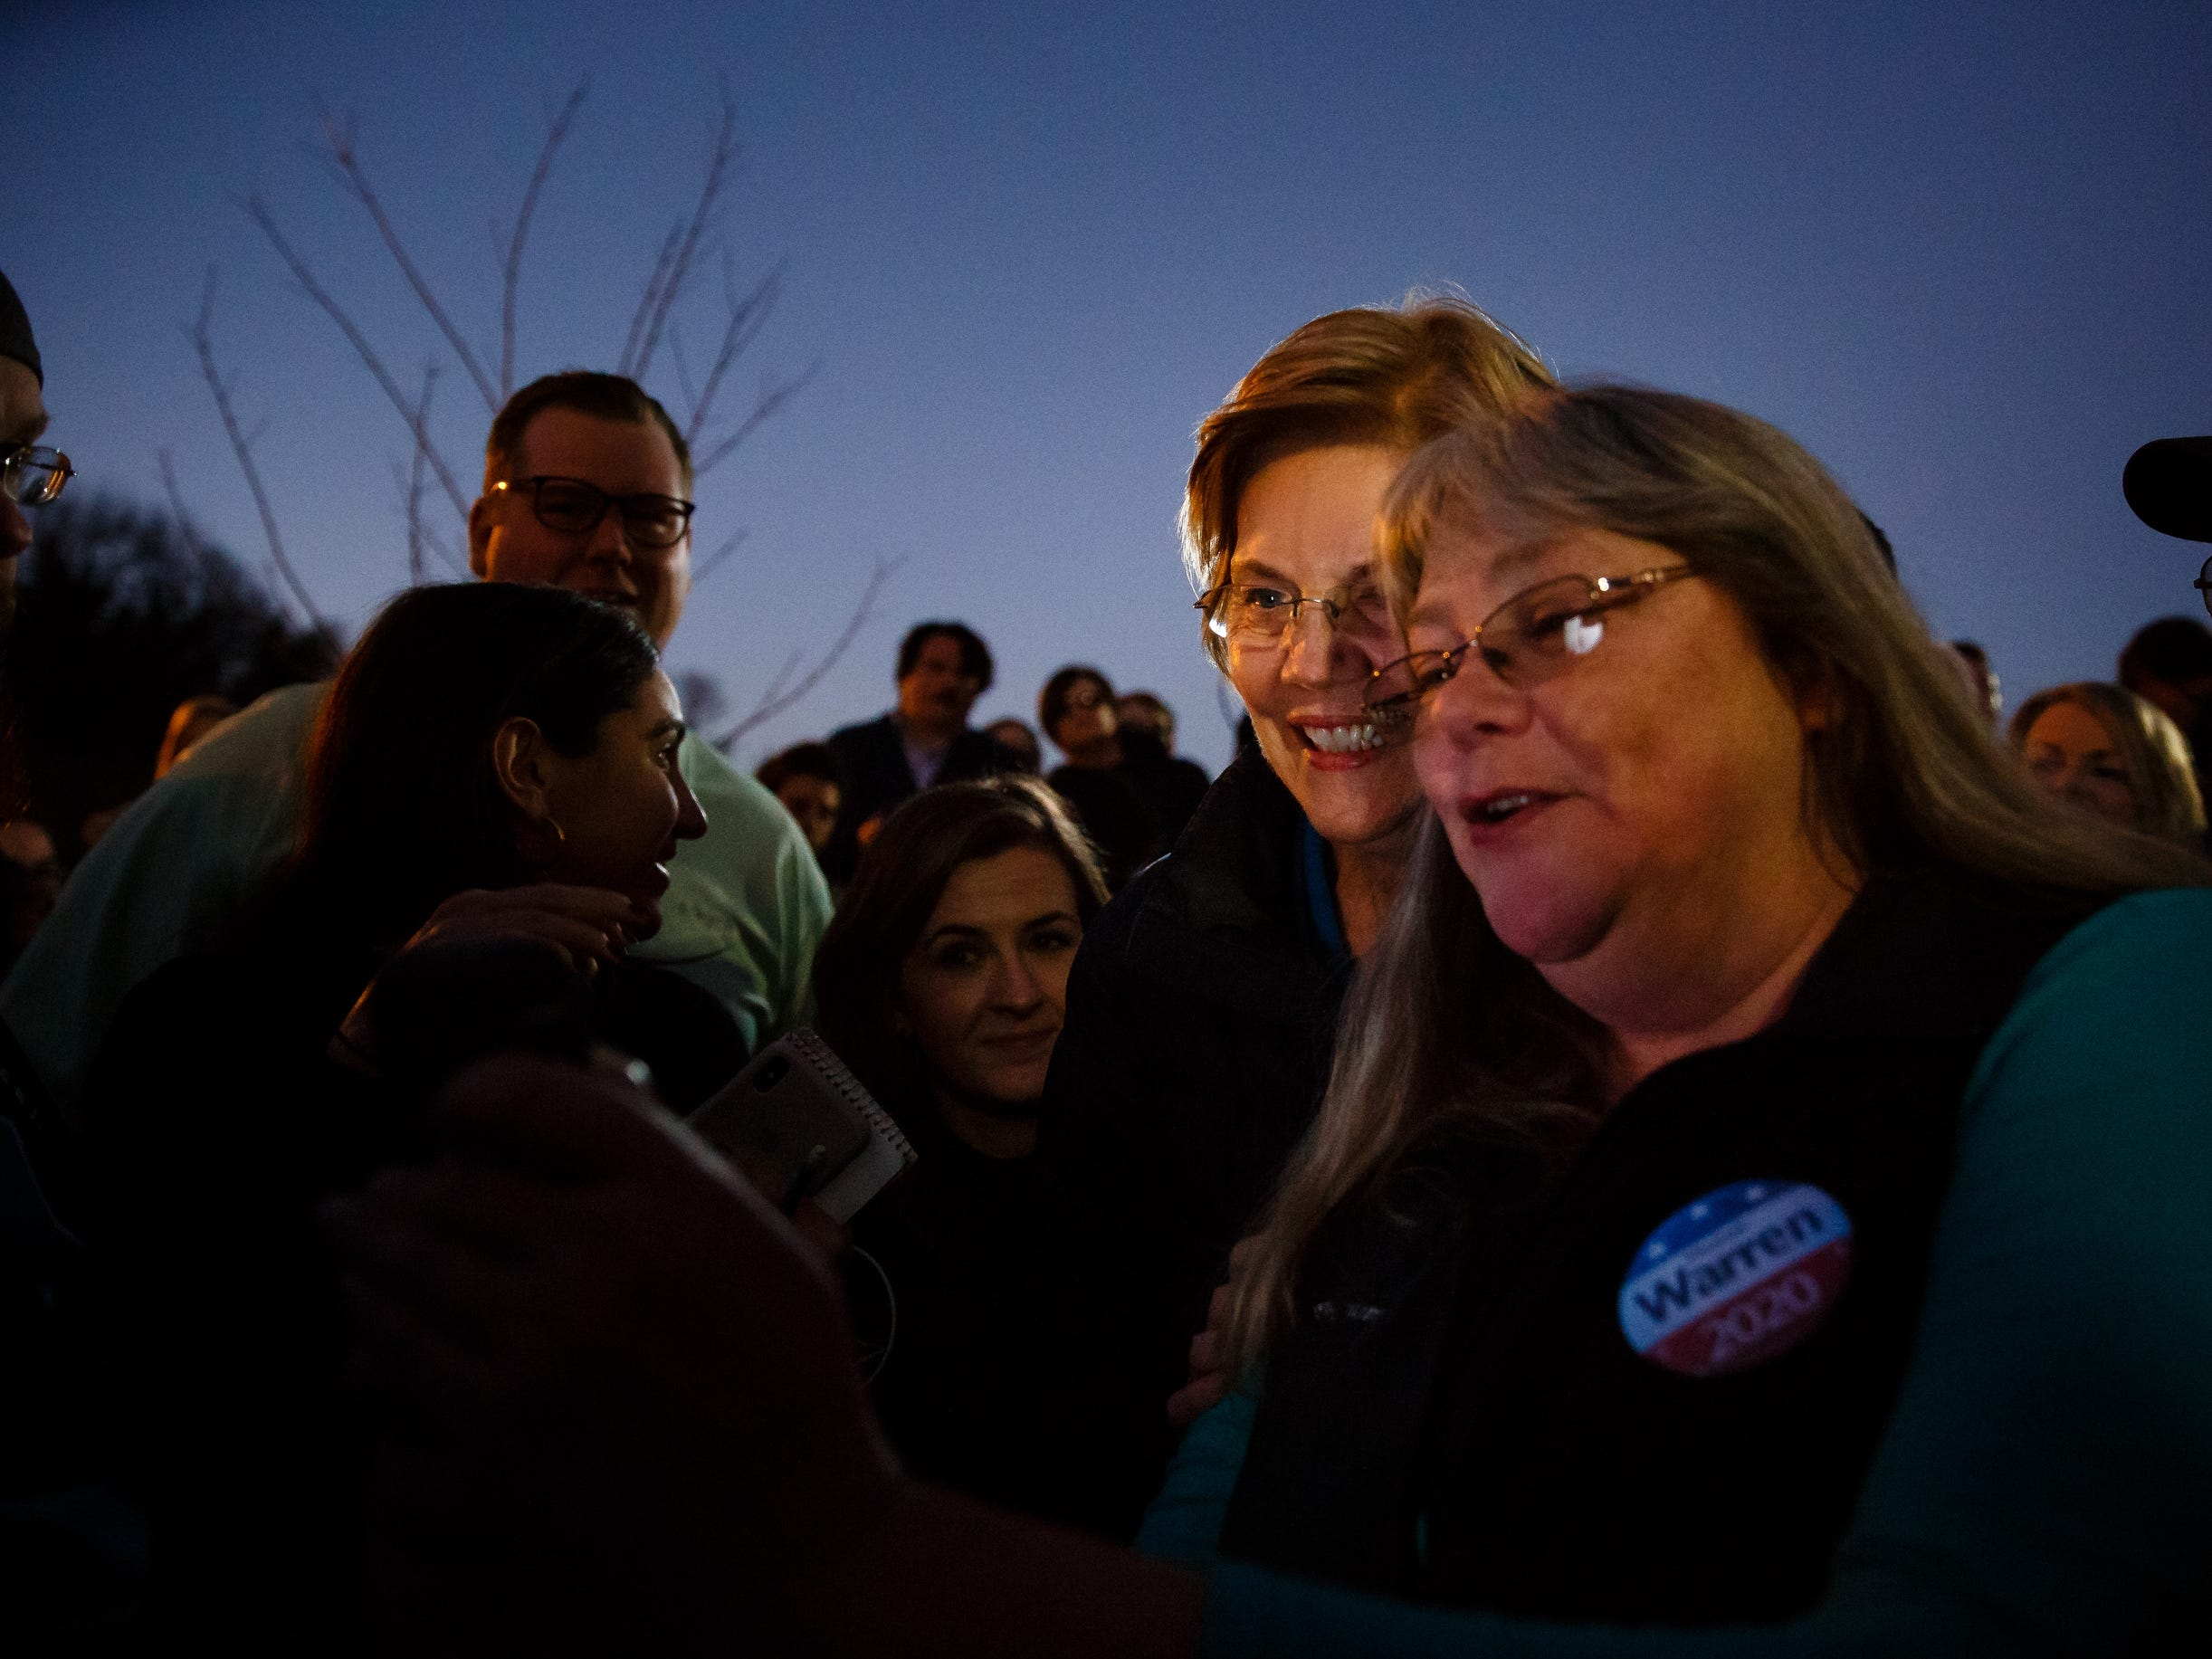 Sen. Elizabeth Warren takes photos with the overflow crowd during an event on her first trip through Iowa as a possible 2020 presidential candidate on Friday, Jan. 4, 2019, in Council Bluffs.